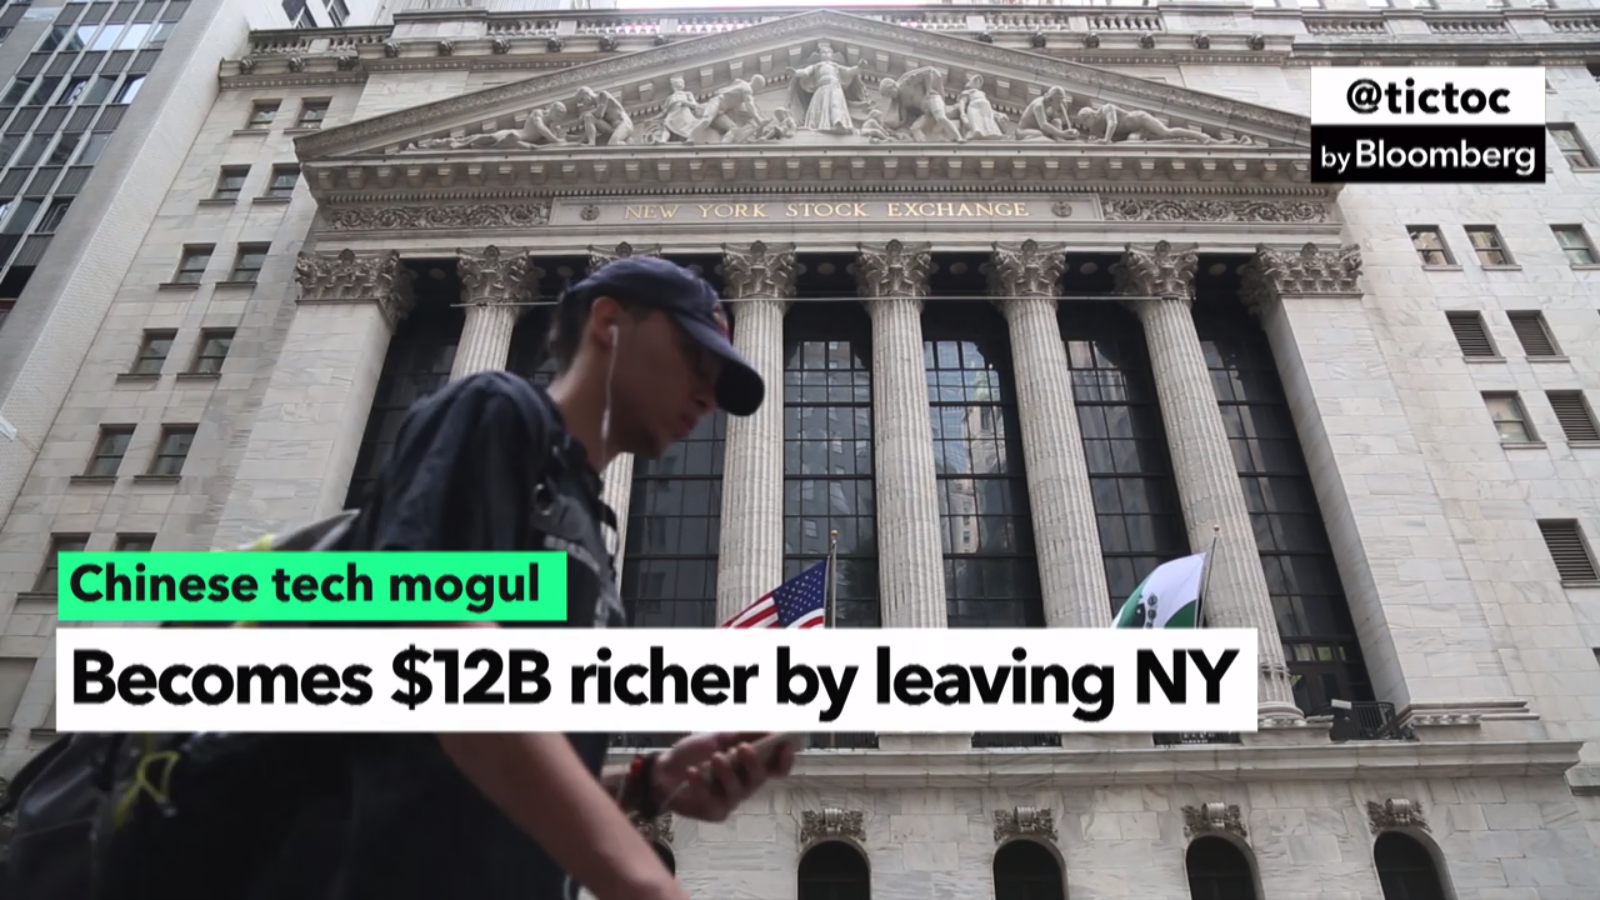 $12 Billion Richer Just by Leaving New York for China